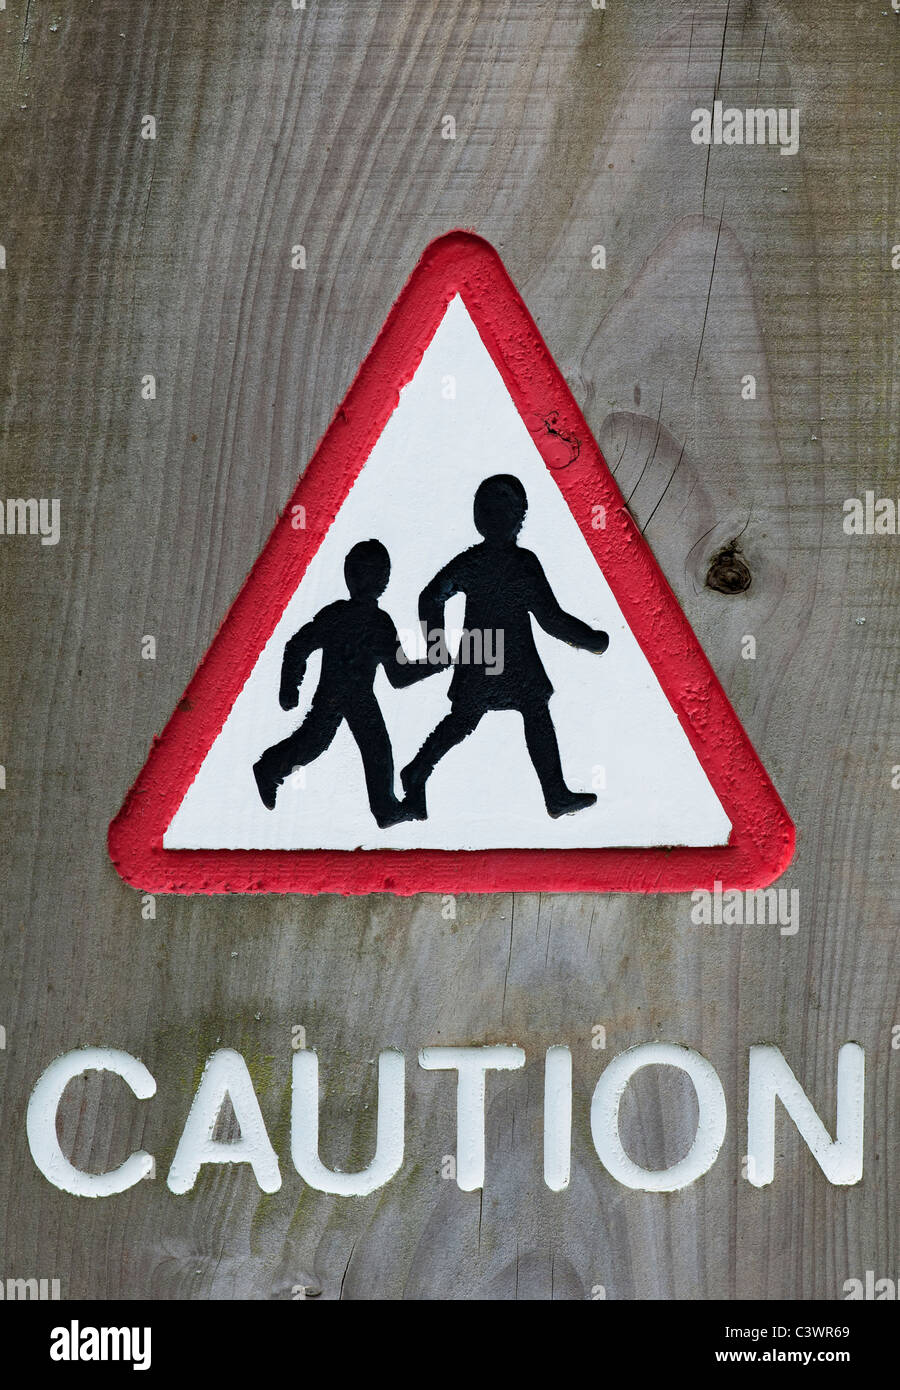 Triangular Pedestrian crossing caution sign carved into wood - Stock Image